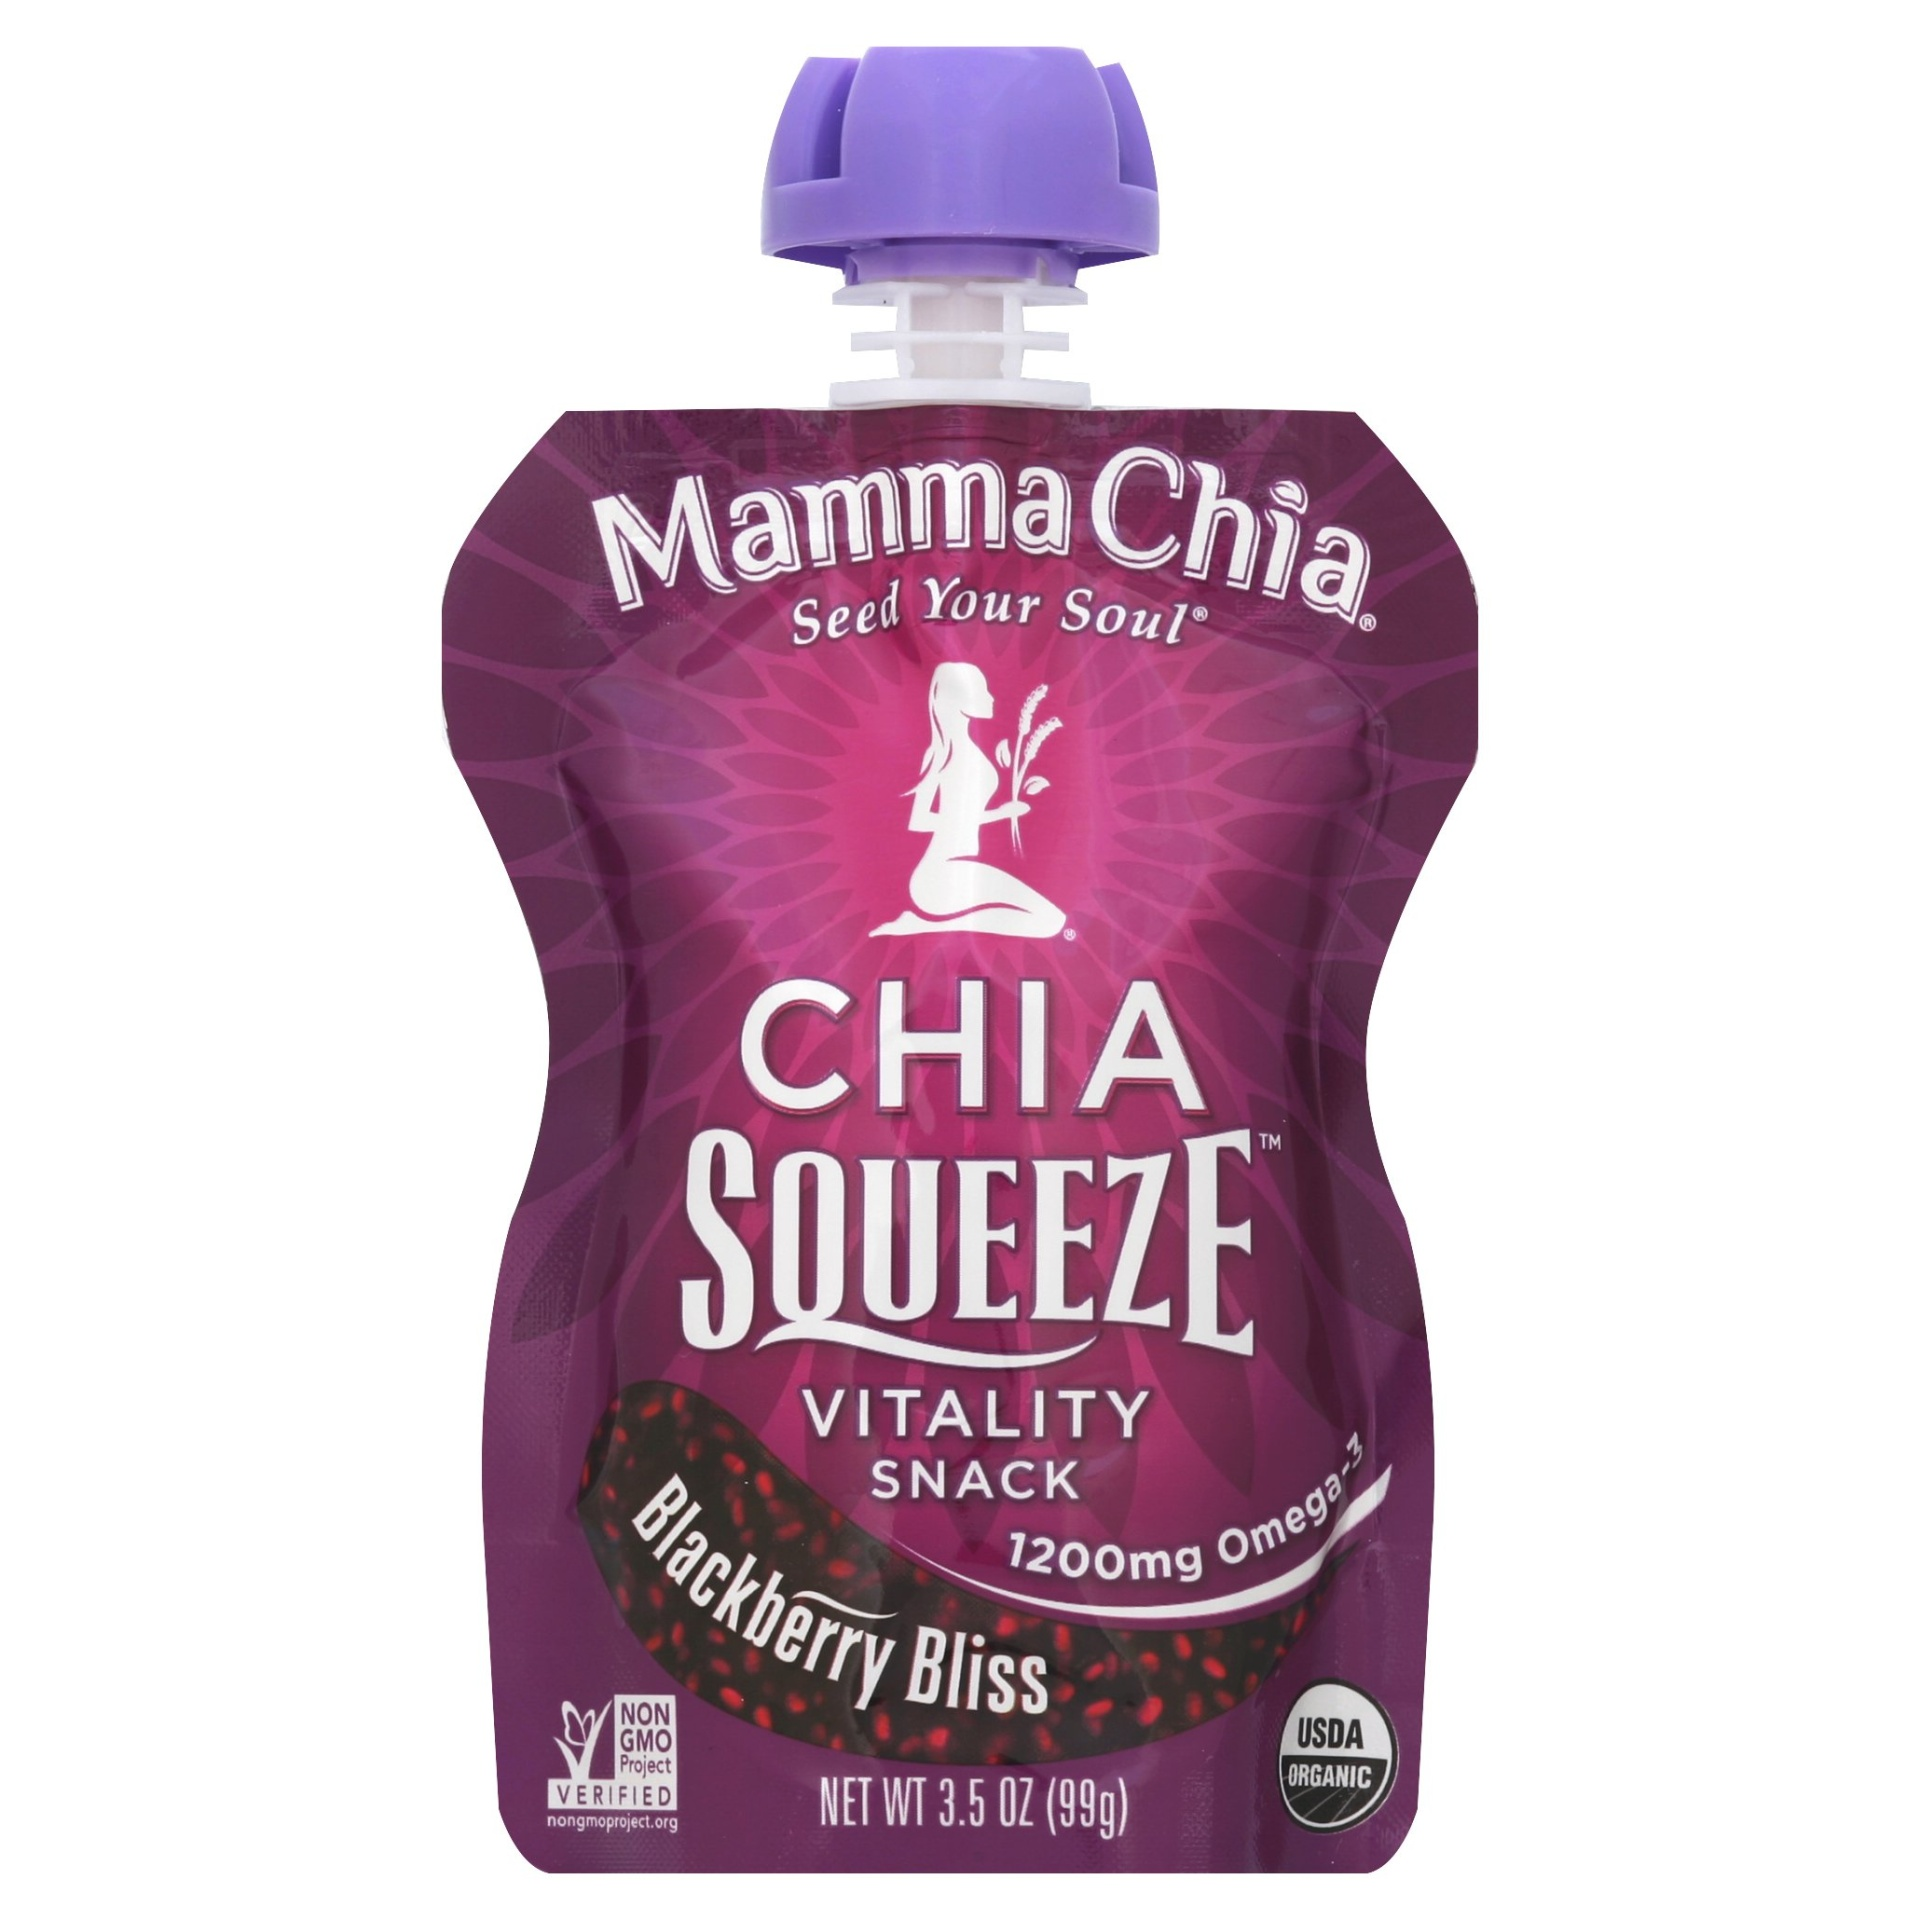 slide 1 of 18, Mamma Chia Chia Squeeze Vitality Snack Blackberry Bliss,